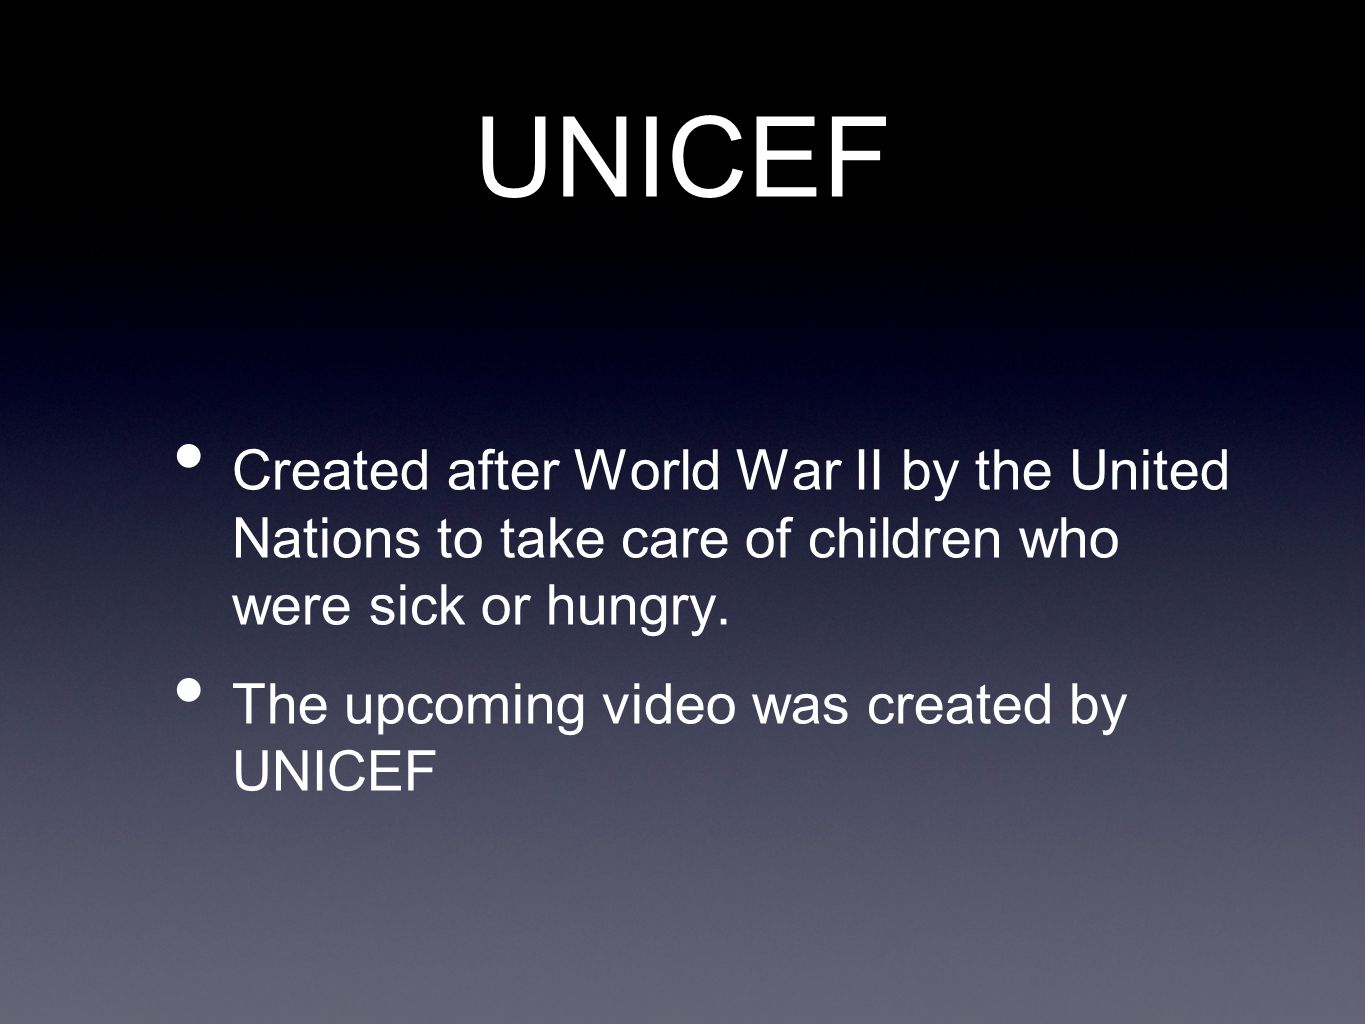 UNICEFCreated after World War II by the United Nations to take care of children who were sick or hungry.